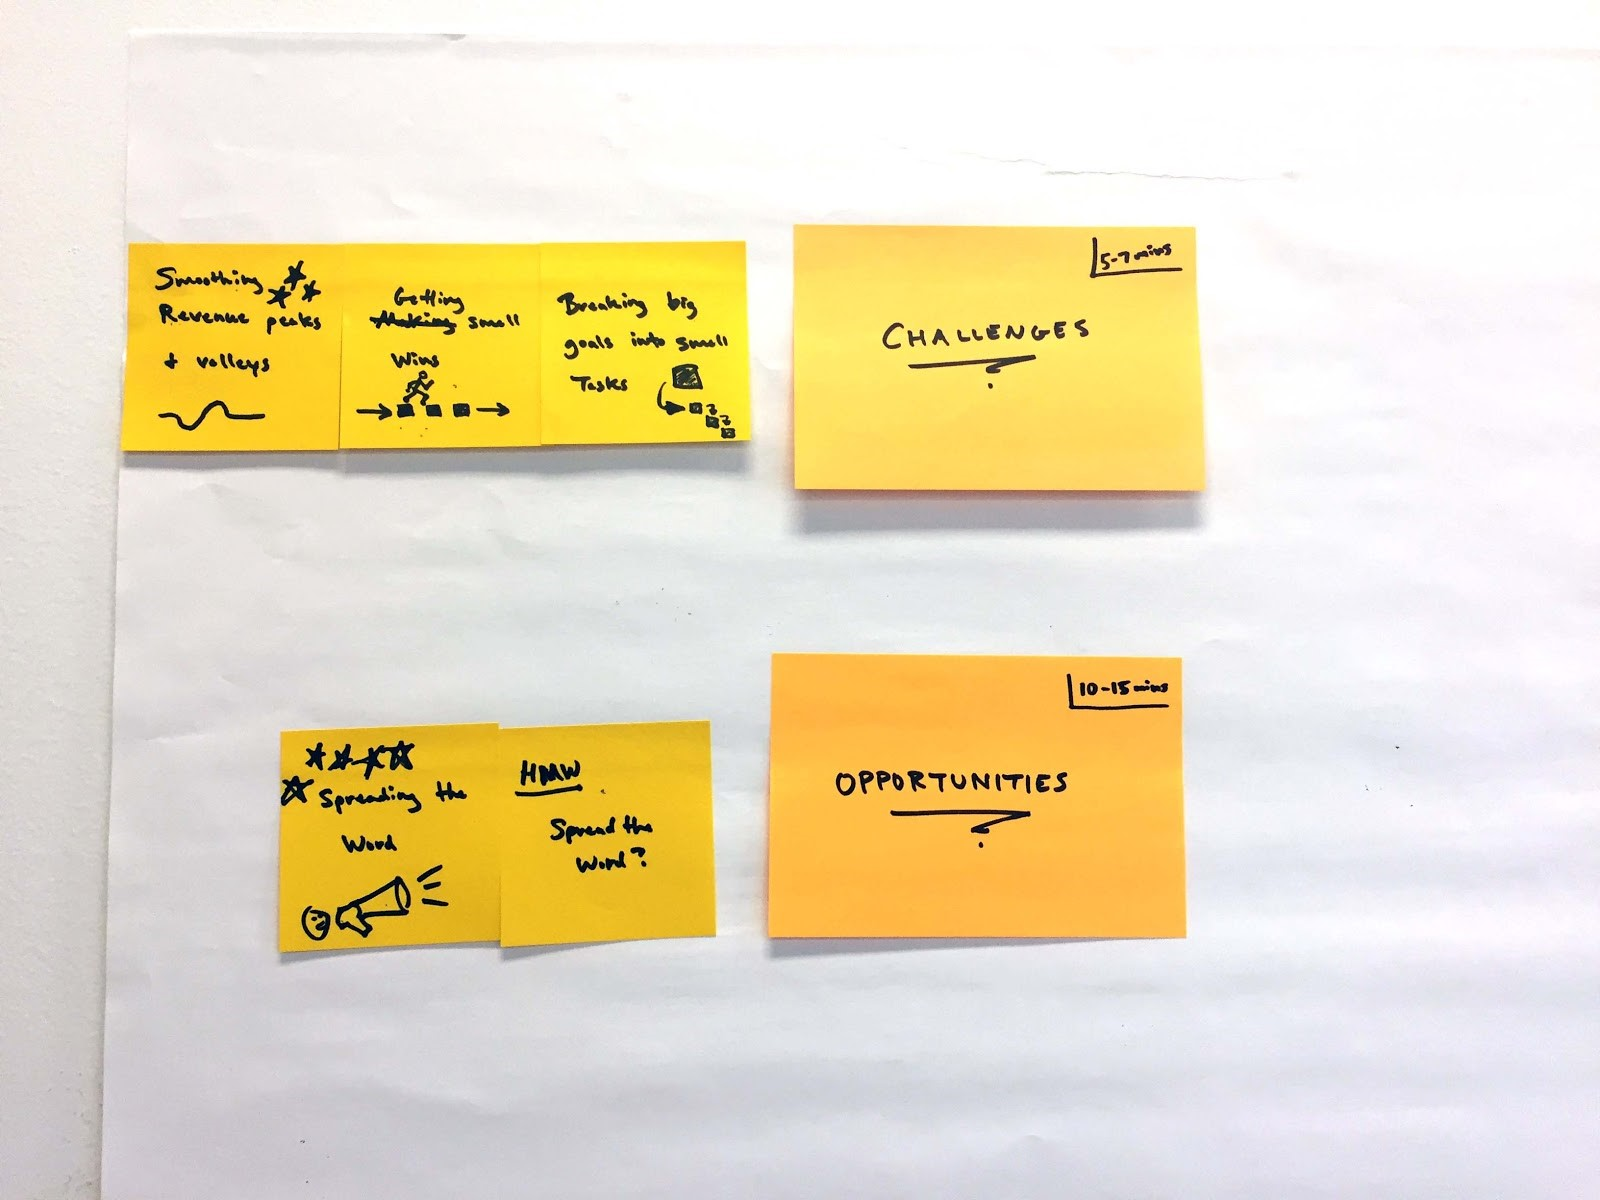 """The selected challenge gets moved to an empty workspace. It's then reframed as an opportunity using """"how might we…"""" as the starting point for generating ideas (in the next step)."""